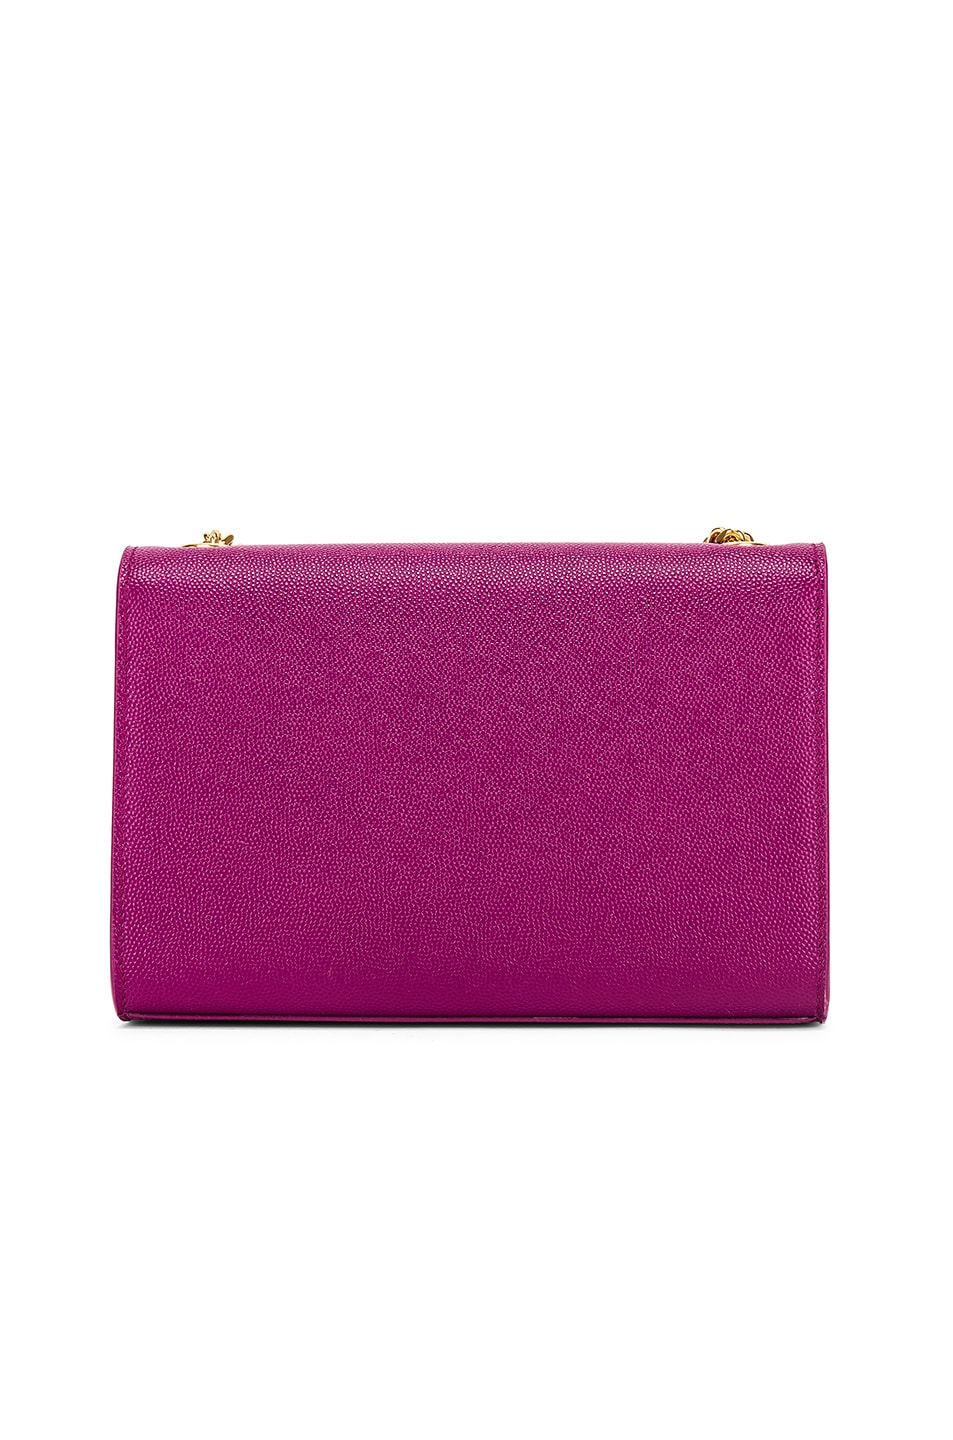 Image 3 of Saint Laurent Small Kate Monogramme Chain Bag in Light Grape